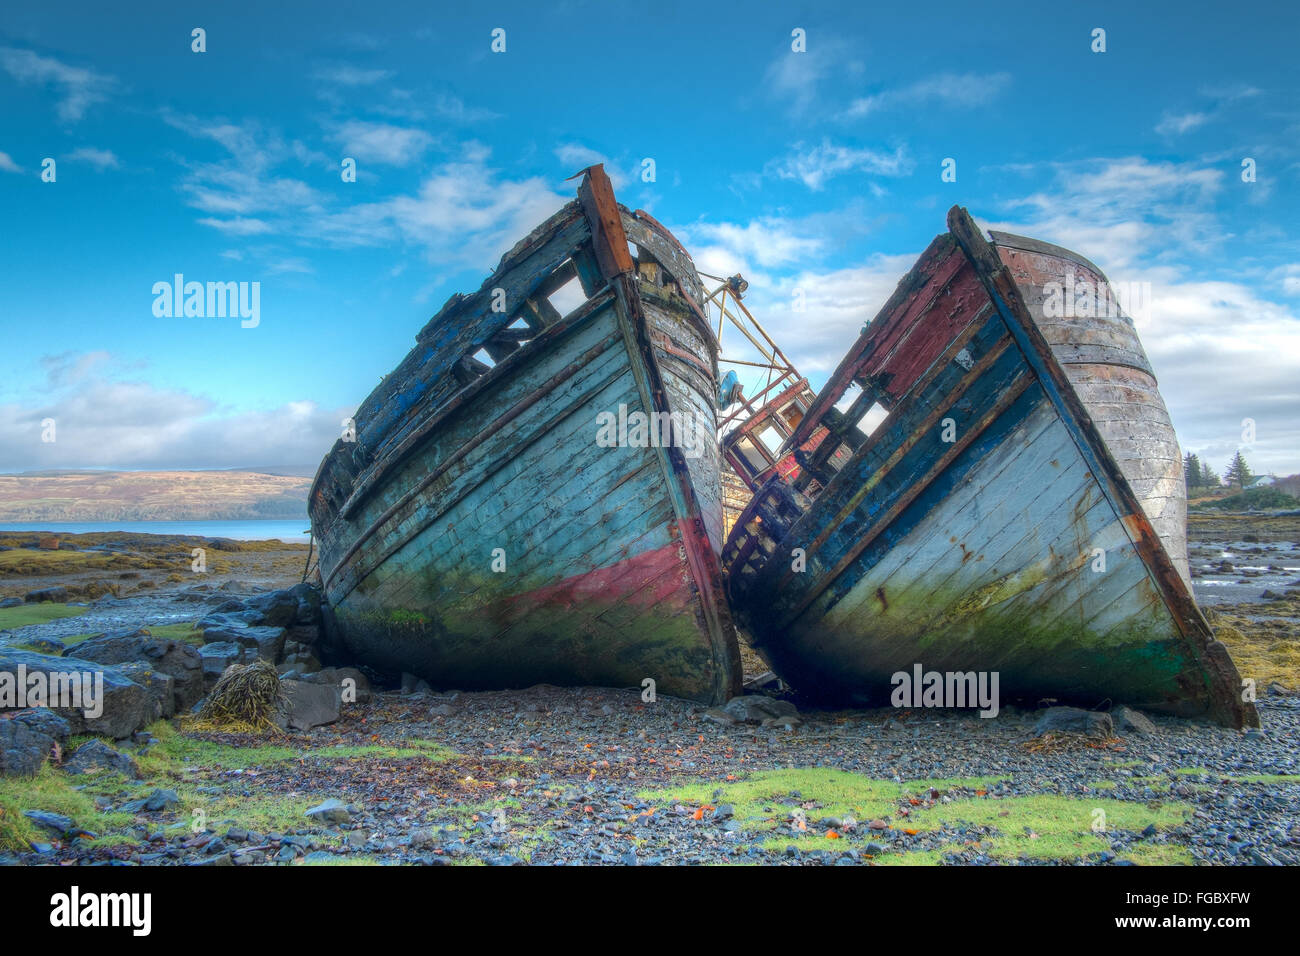 Wrecked Boats On Shore - Stock Image